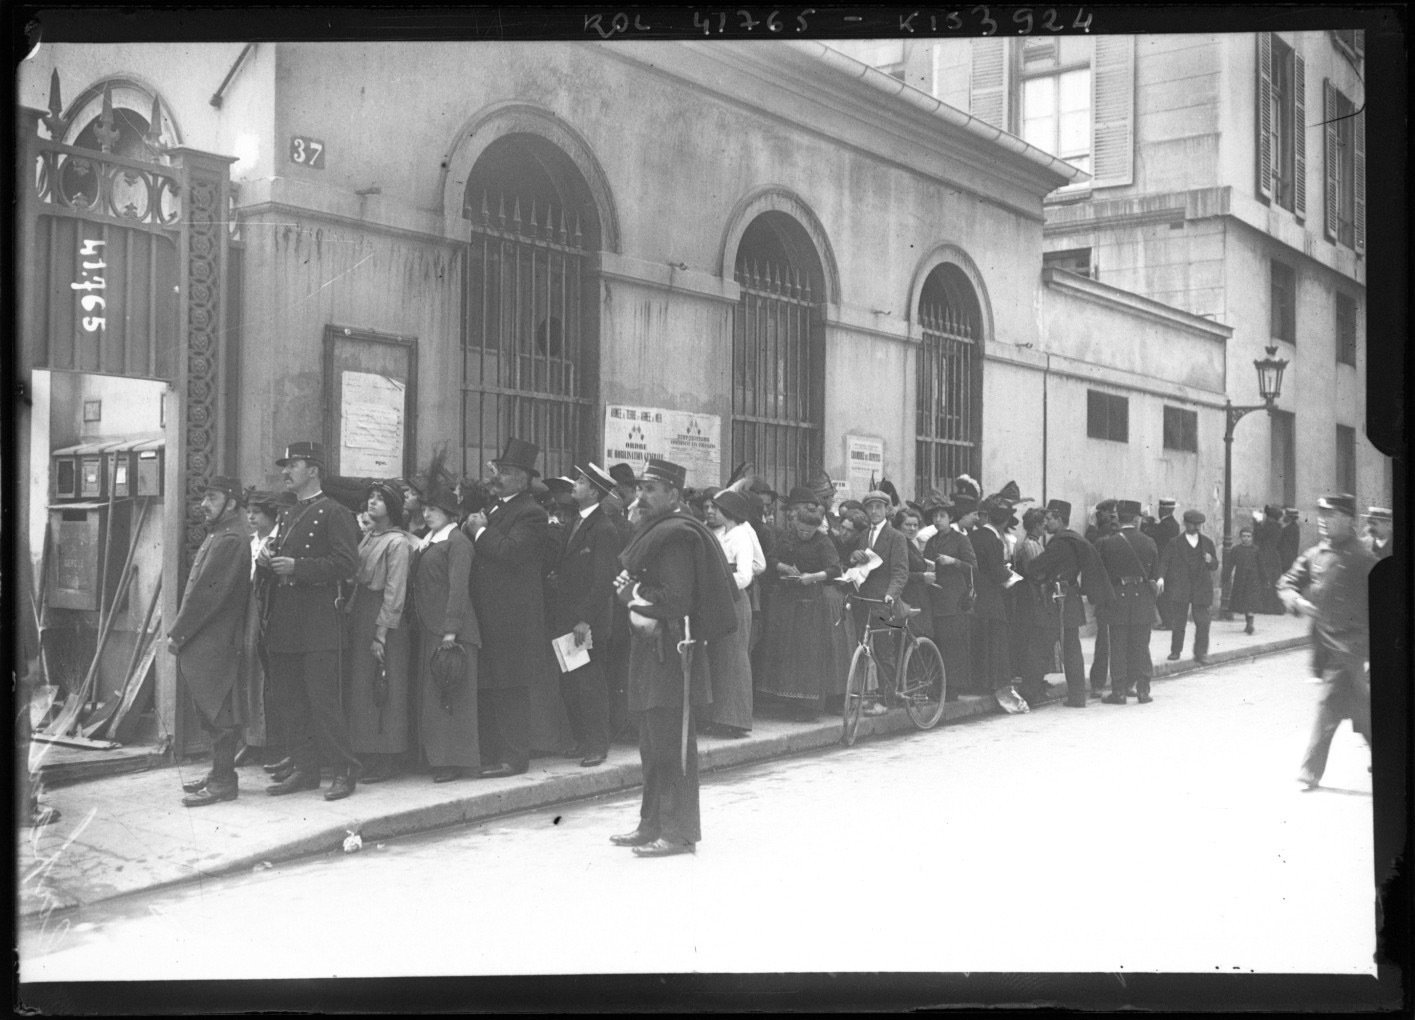 Parents waiting outside a barracks for news of their sons, Agence Rol. Agence photographique 1914-8-11 Paris,  French National Library - Bibliothèque Nationale de France, Public Domain Mark